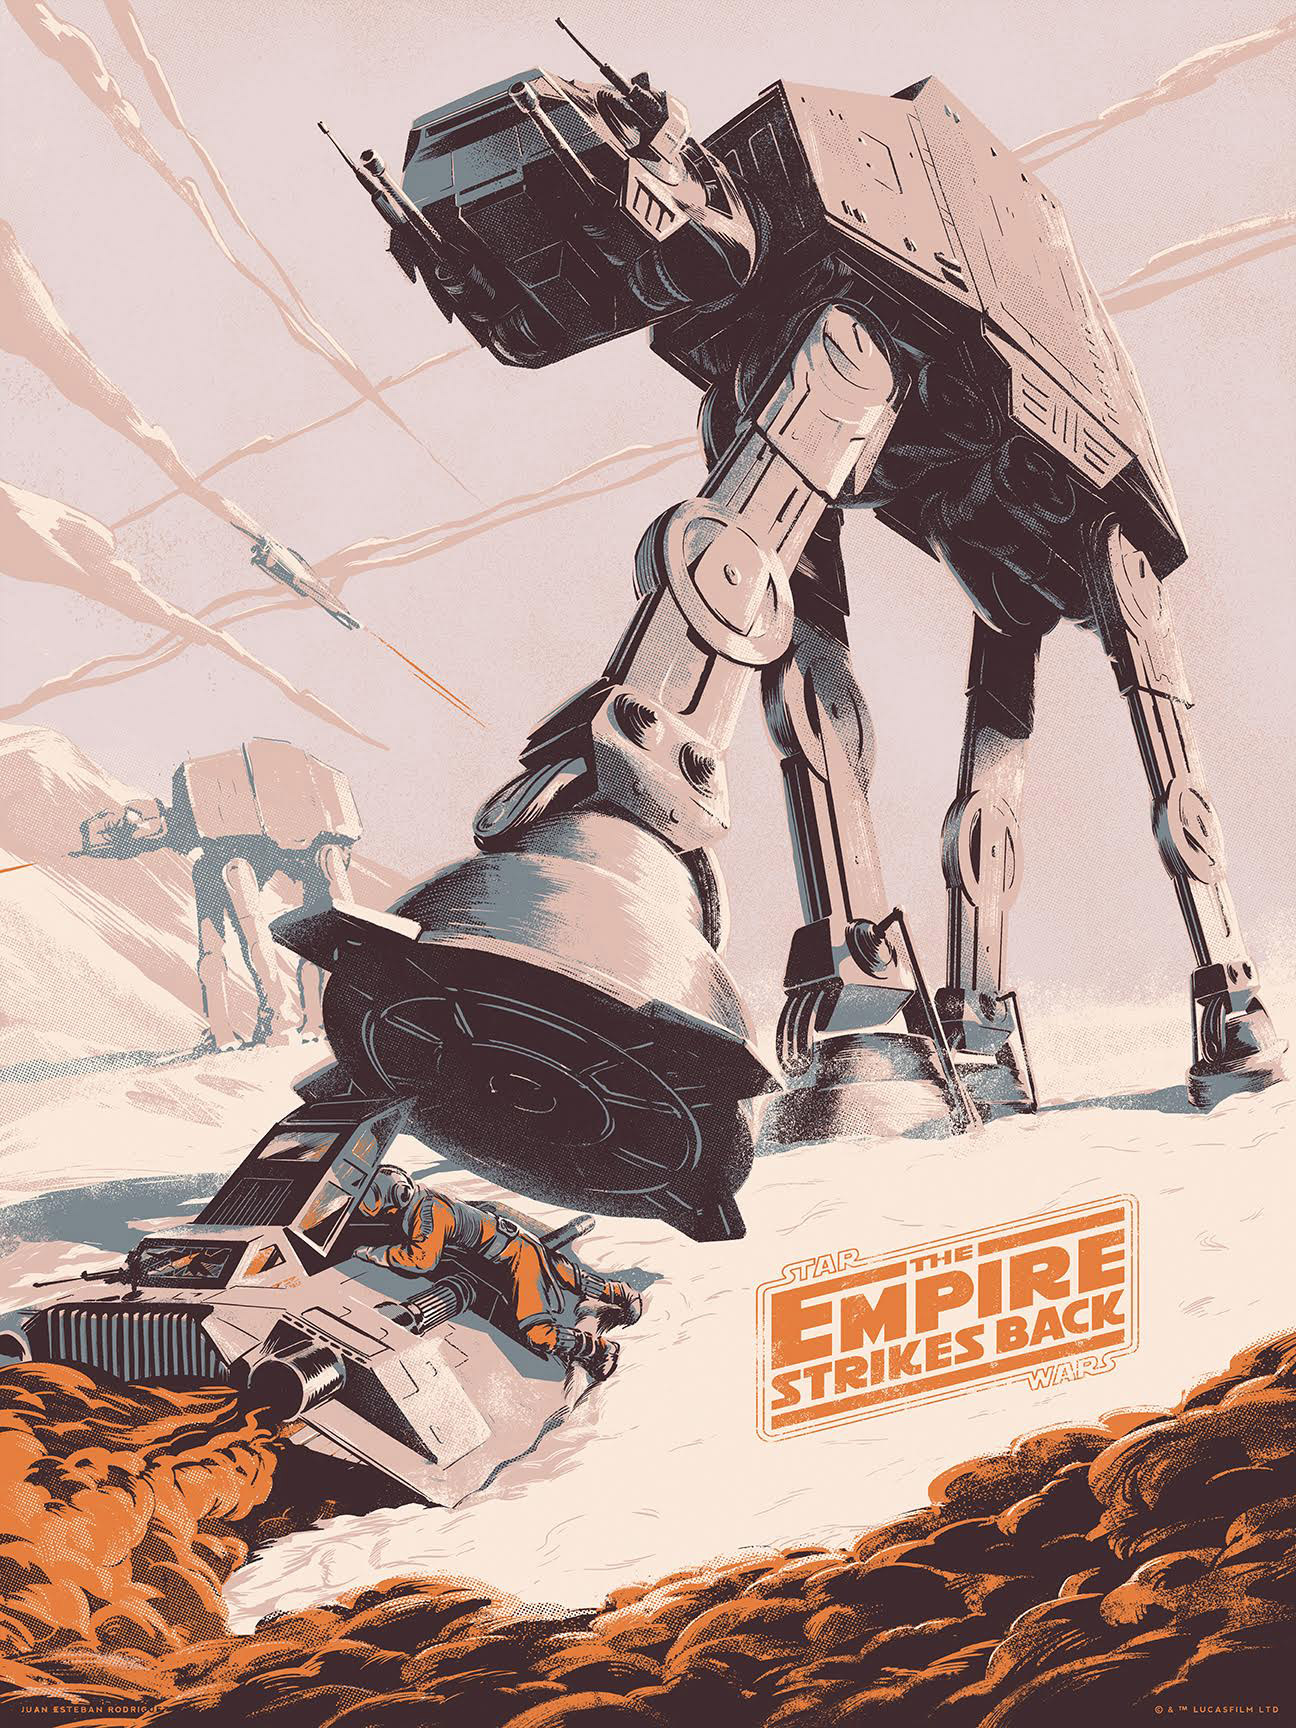 The Empire Strikes Back Movie Variant Poster